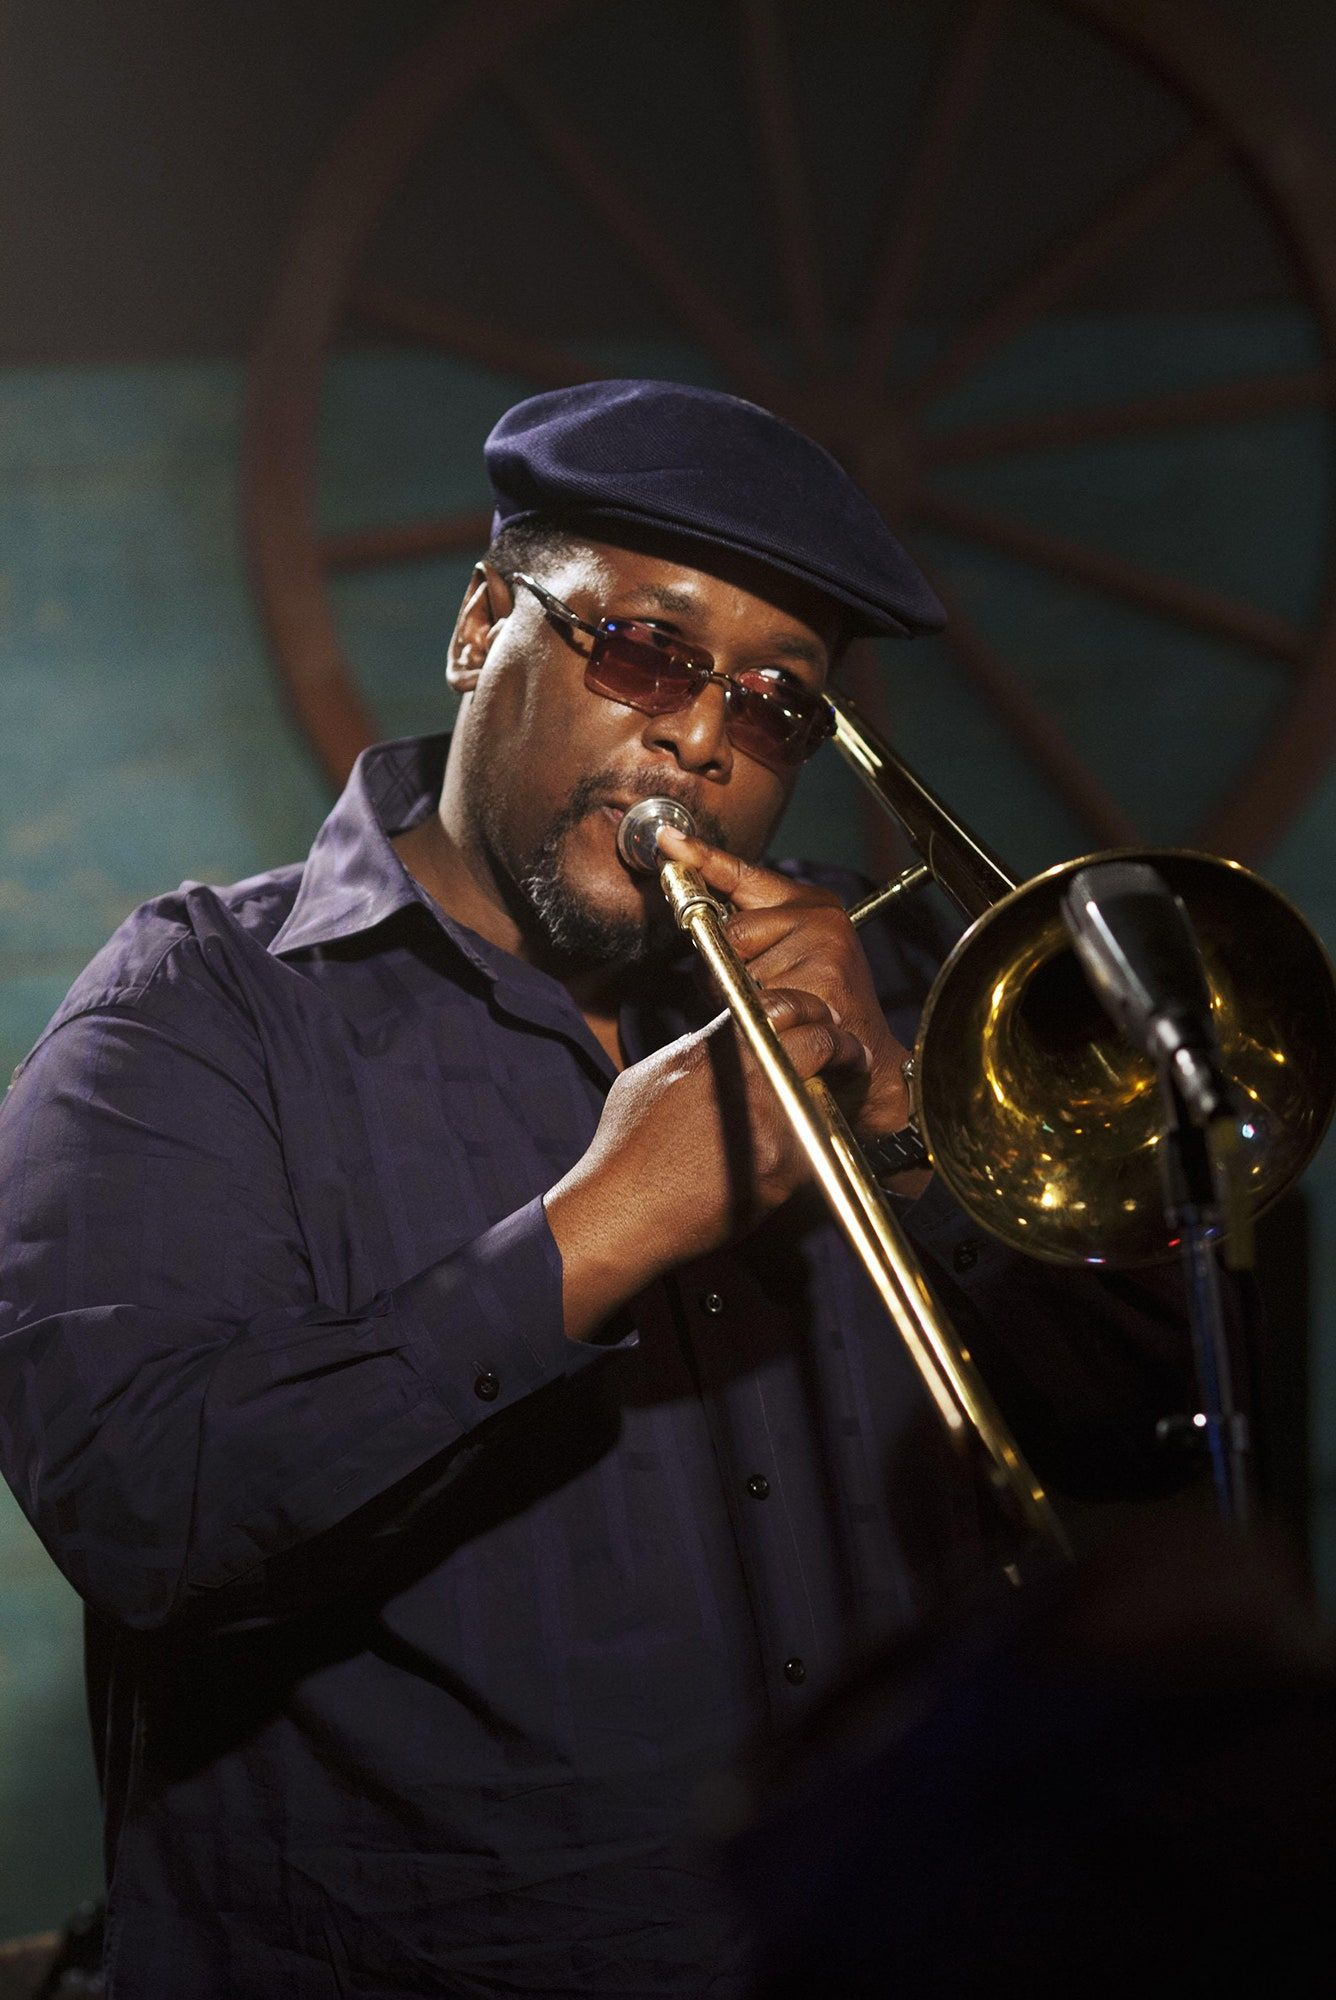 If You Like The Eddy You Would Have Loved David Simons Treme